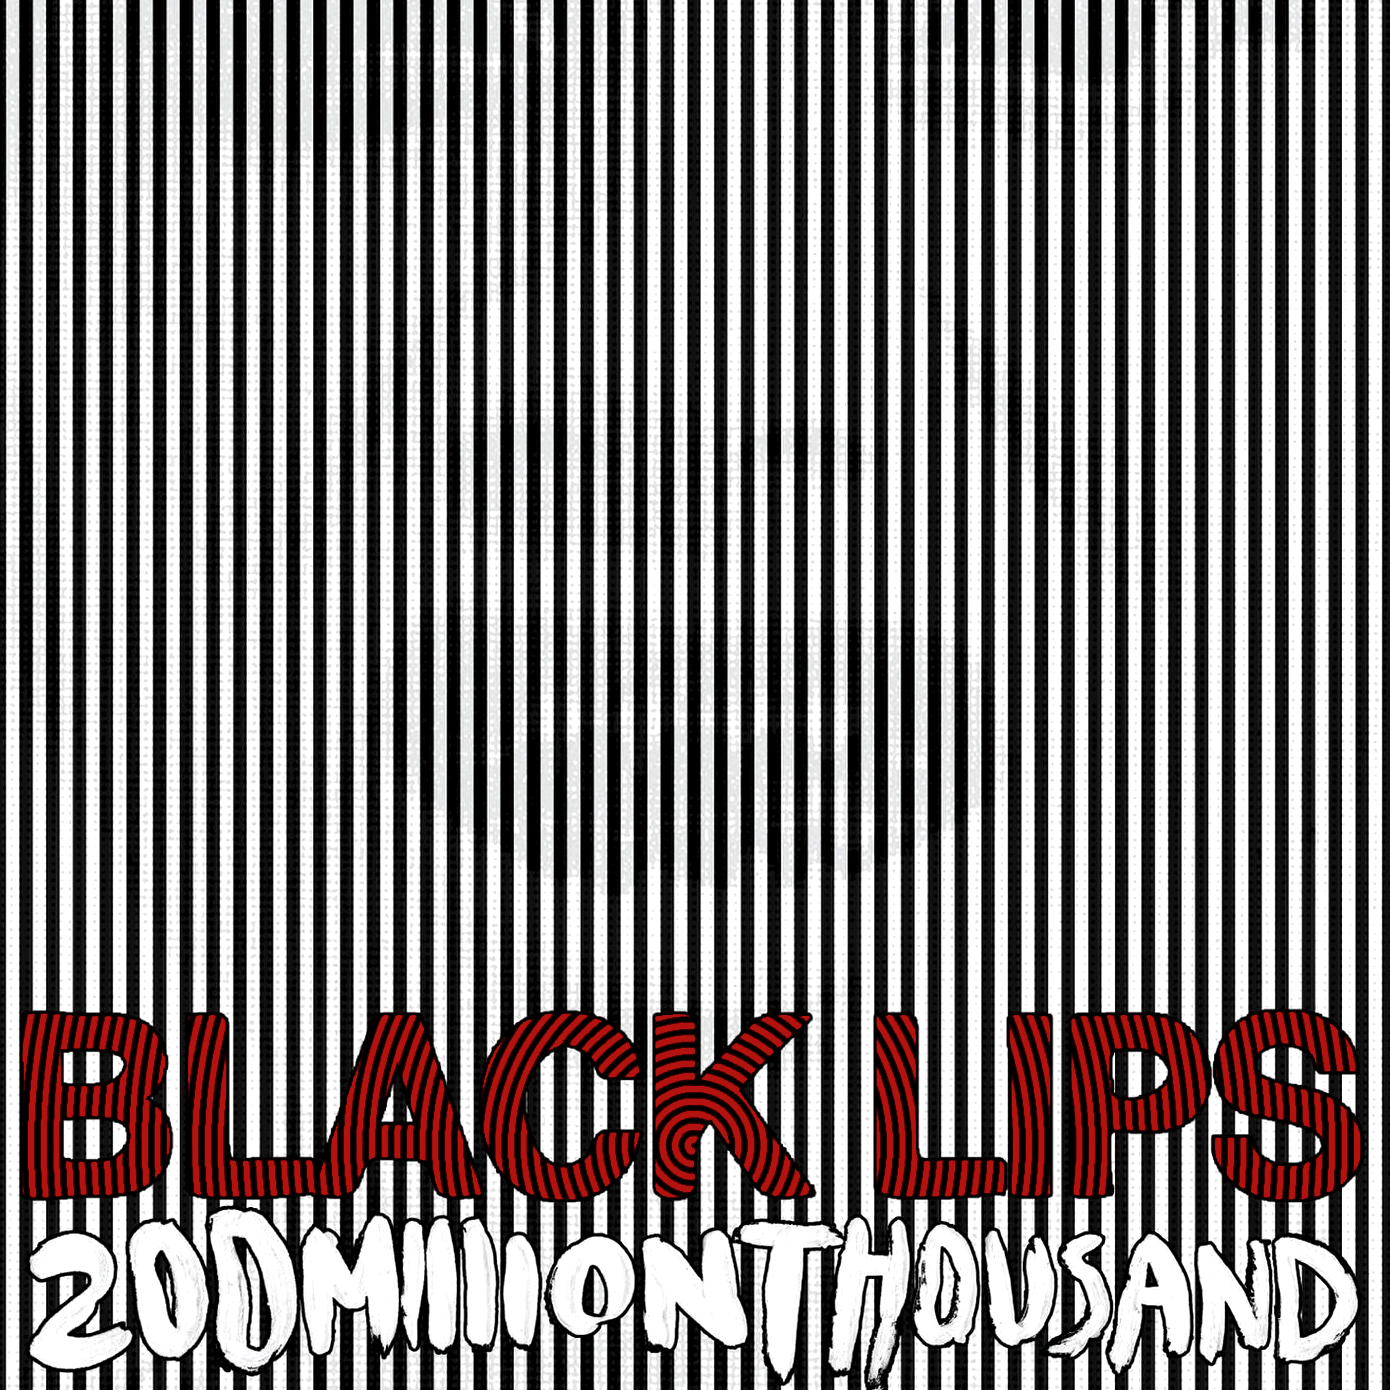 Black Lips, 200 Million Thousand